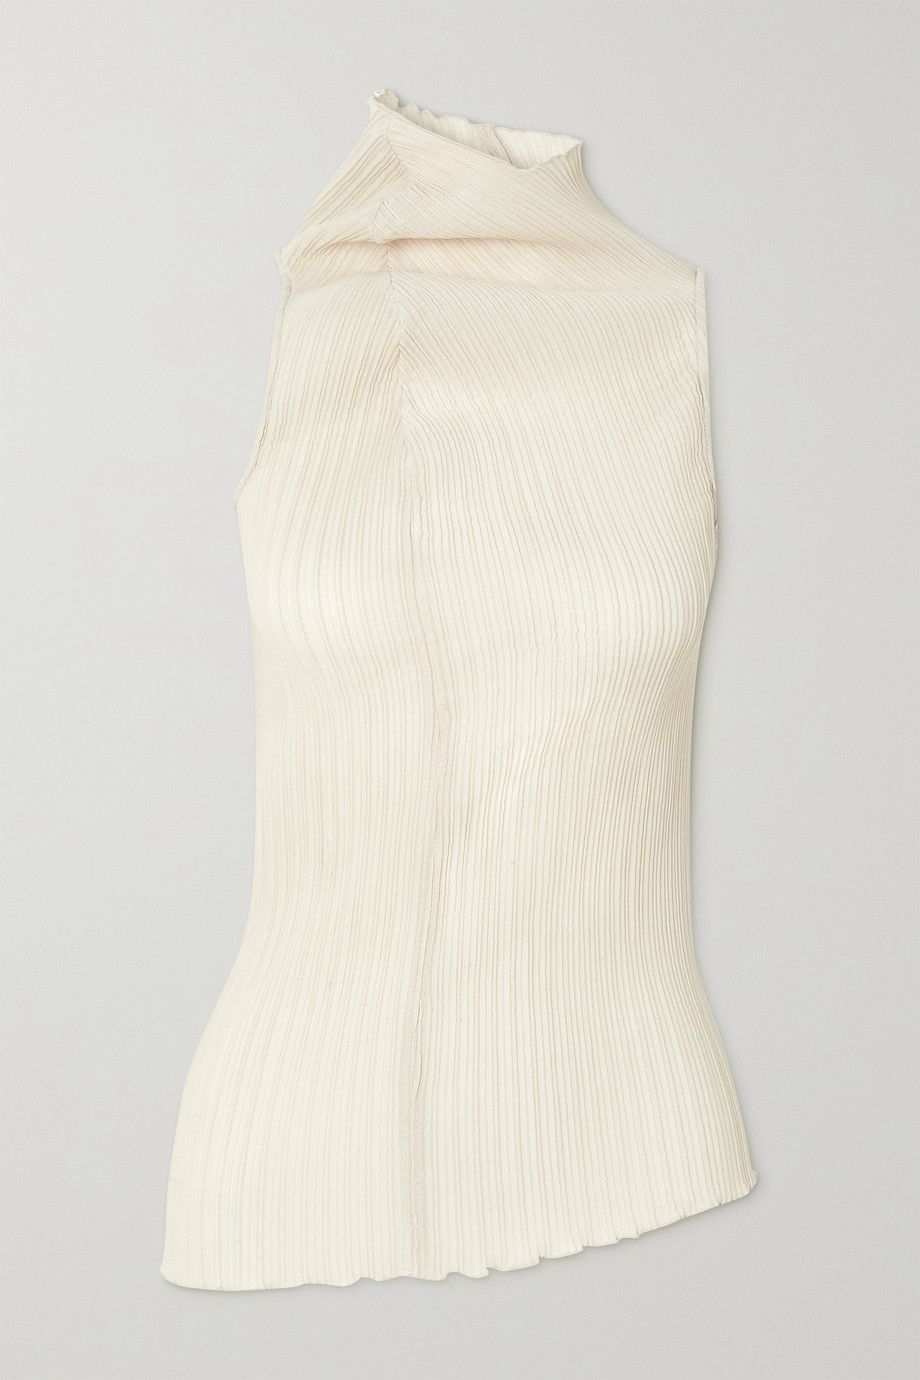 Jil Sander Gathered ribbed stretch-jersey top